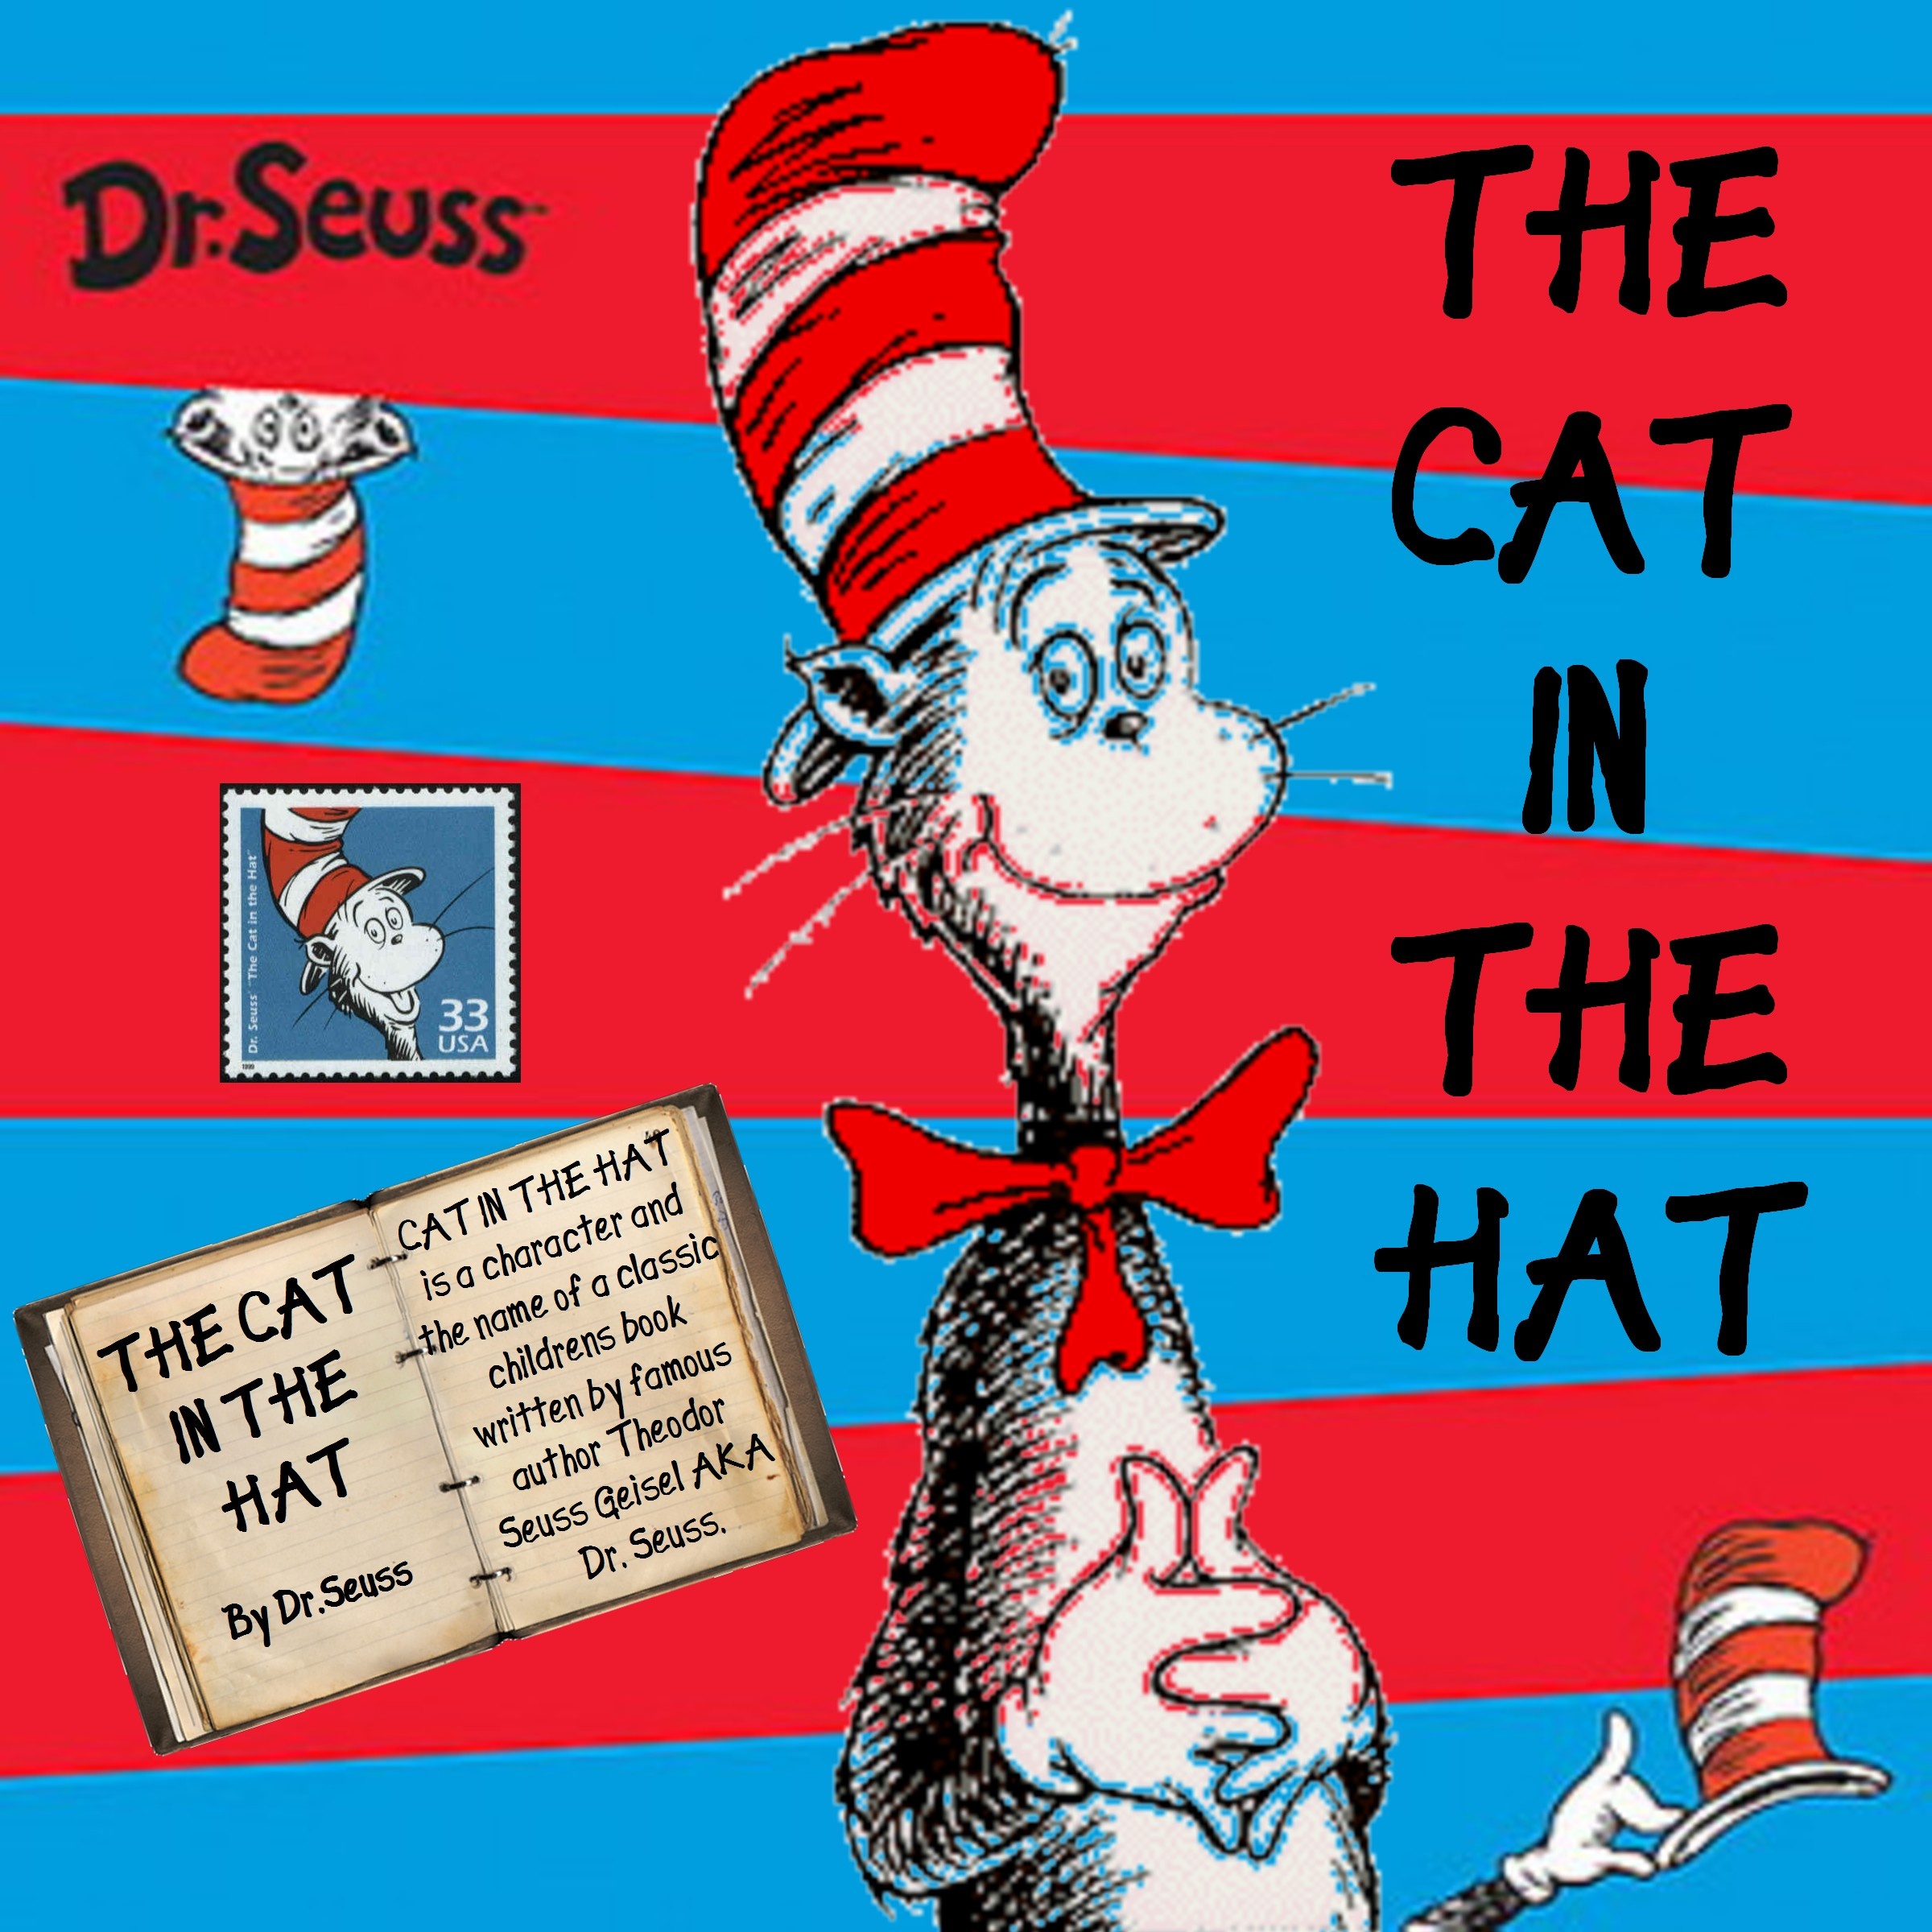 ... Home Page >> sharae's Scrapbooks >> THE CAT IN THE HAT - Page 1